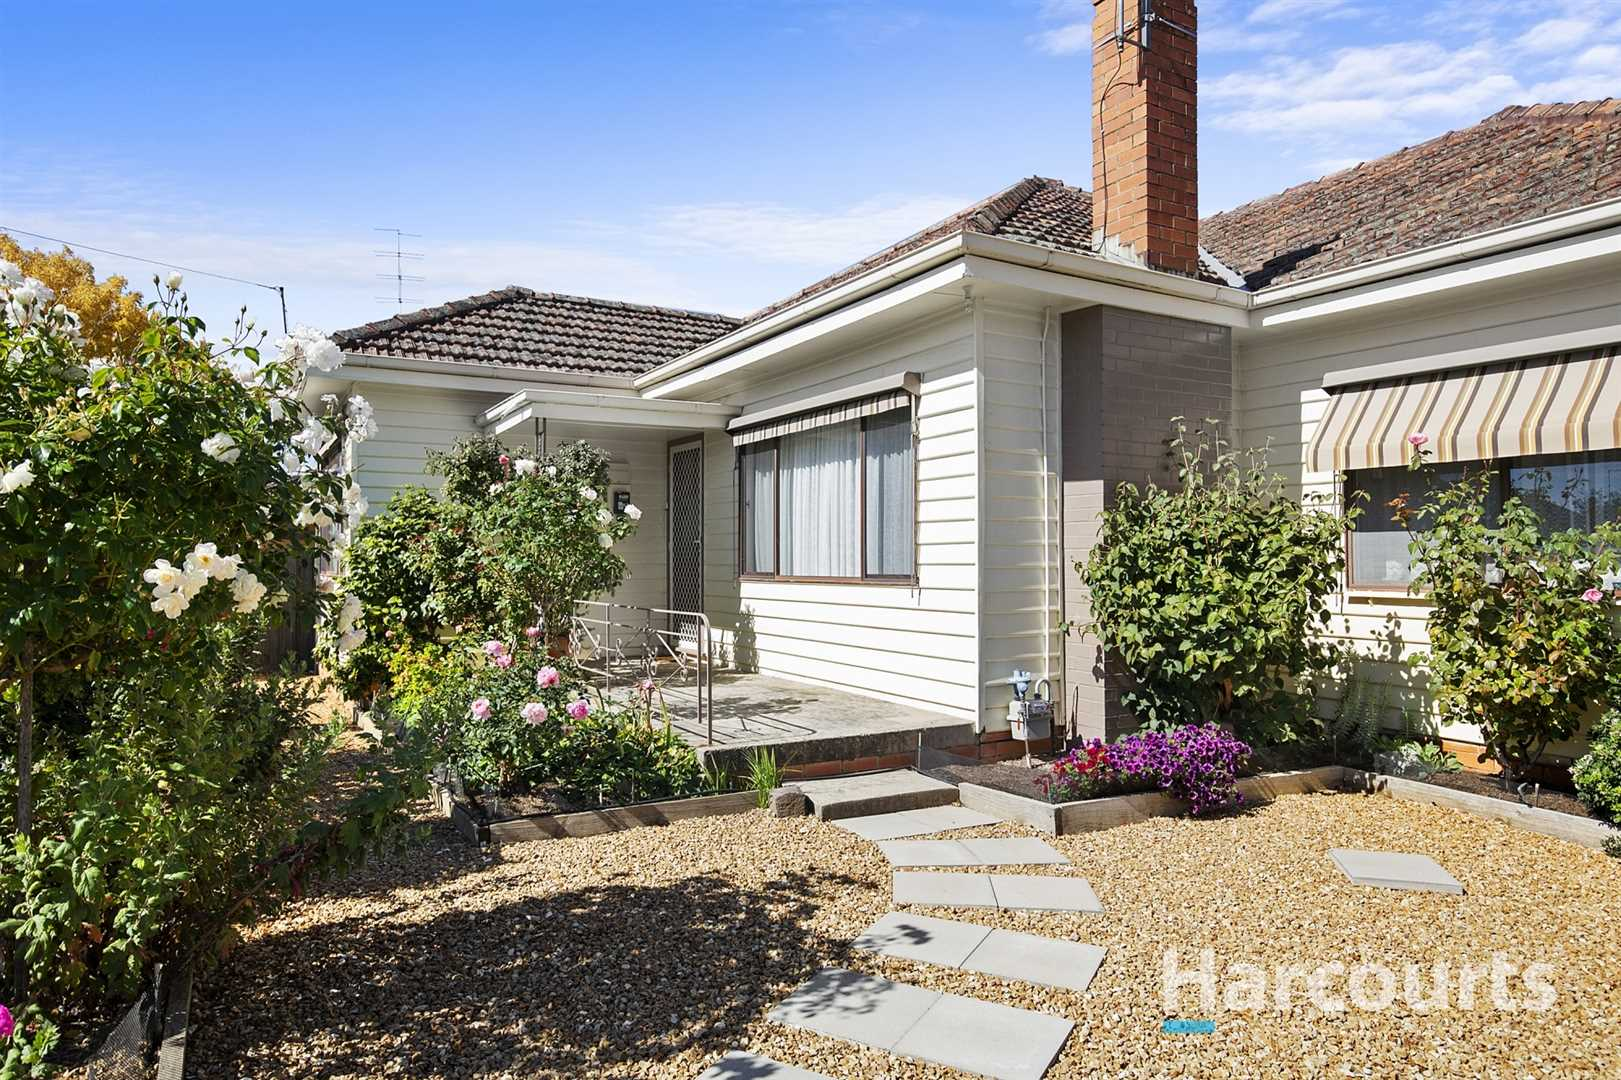 Delightful Home with Wonderful Gardens & Grand Proportions